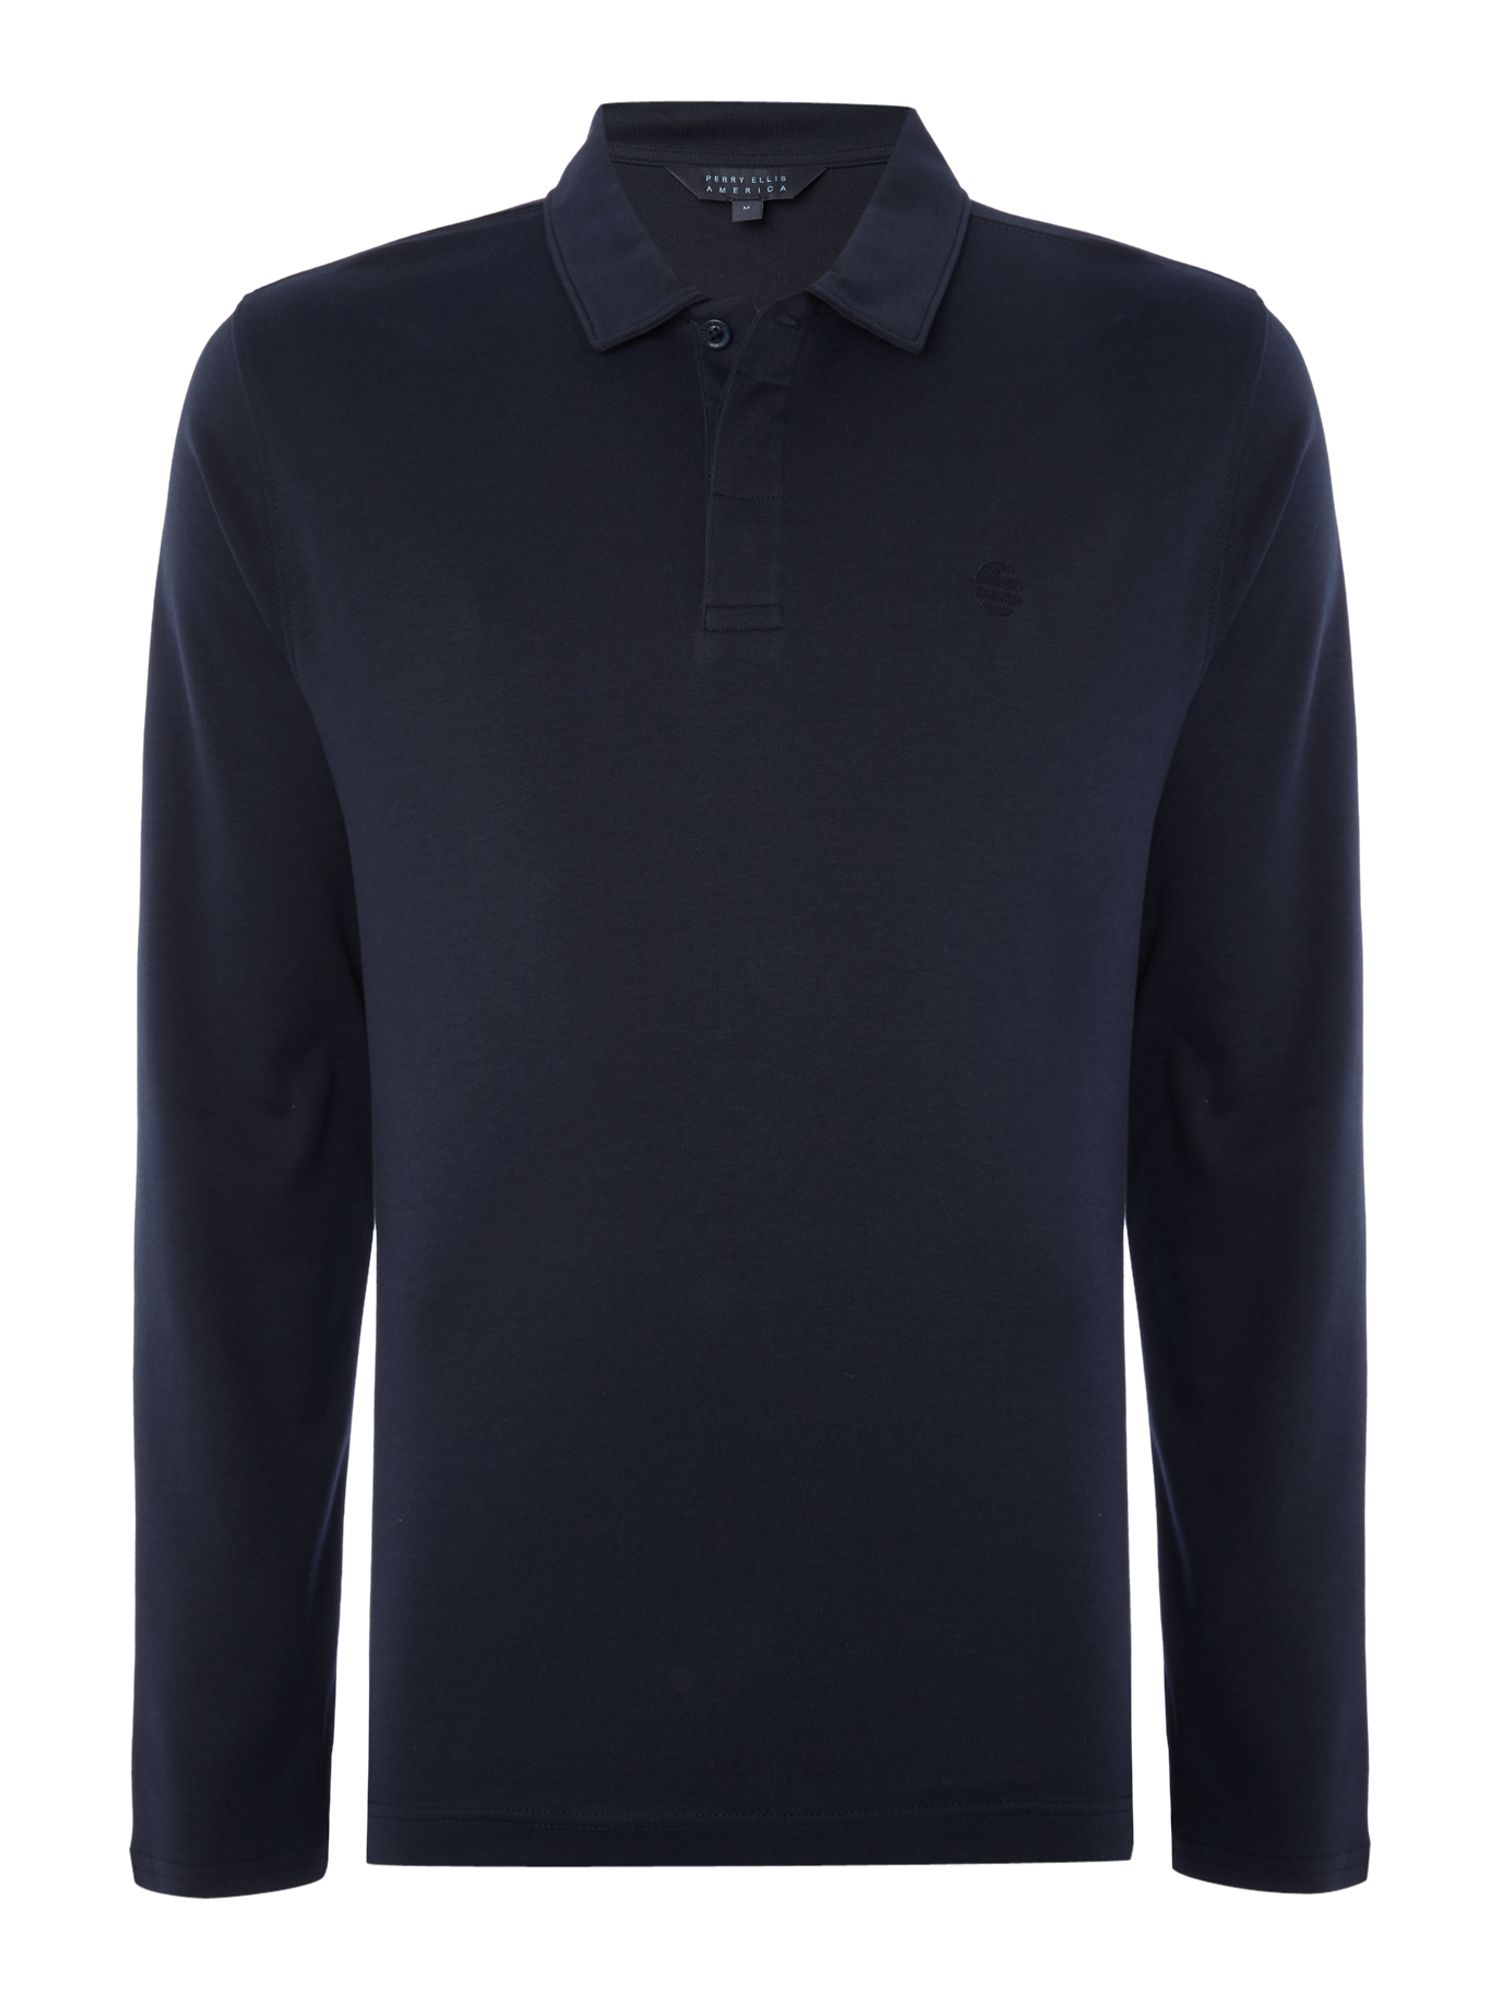 Men's Perry Ellis America Long Sleeve Archive Polo Shirt, Sapphire